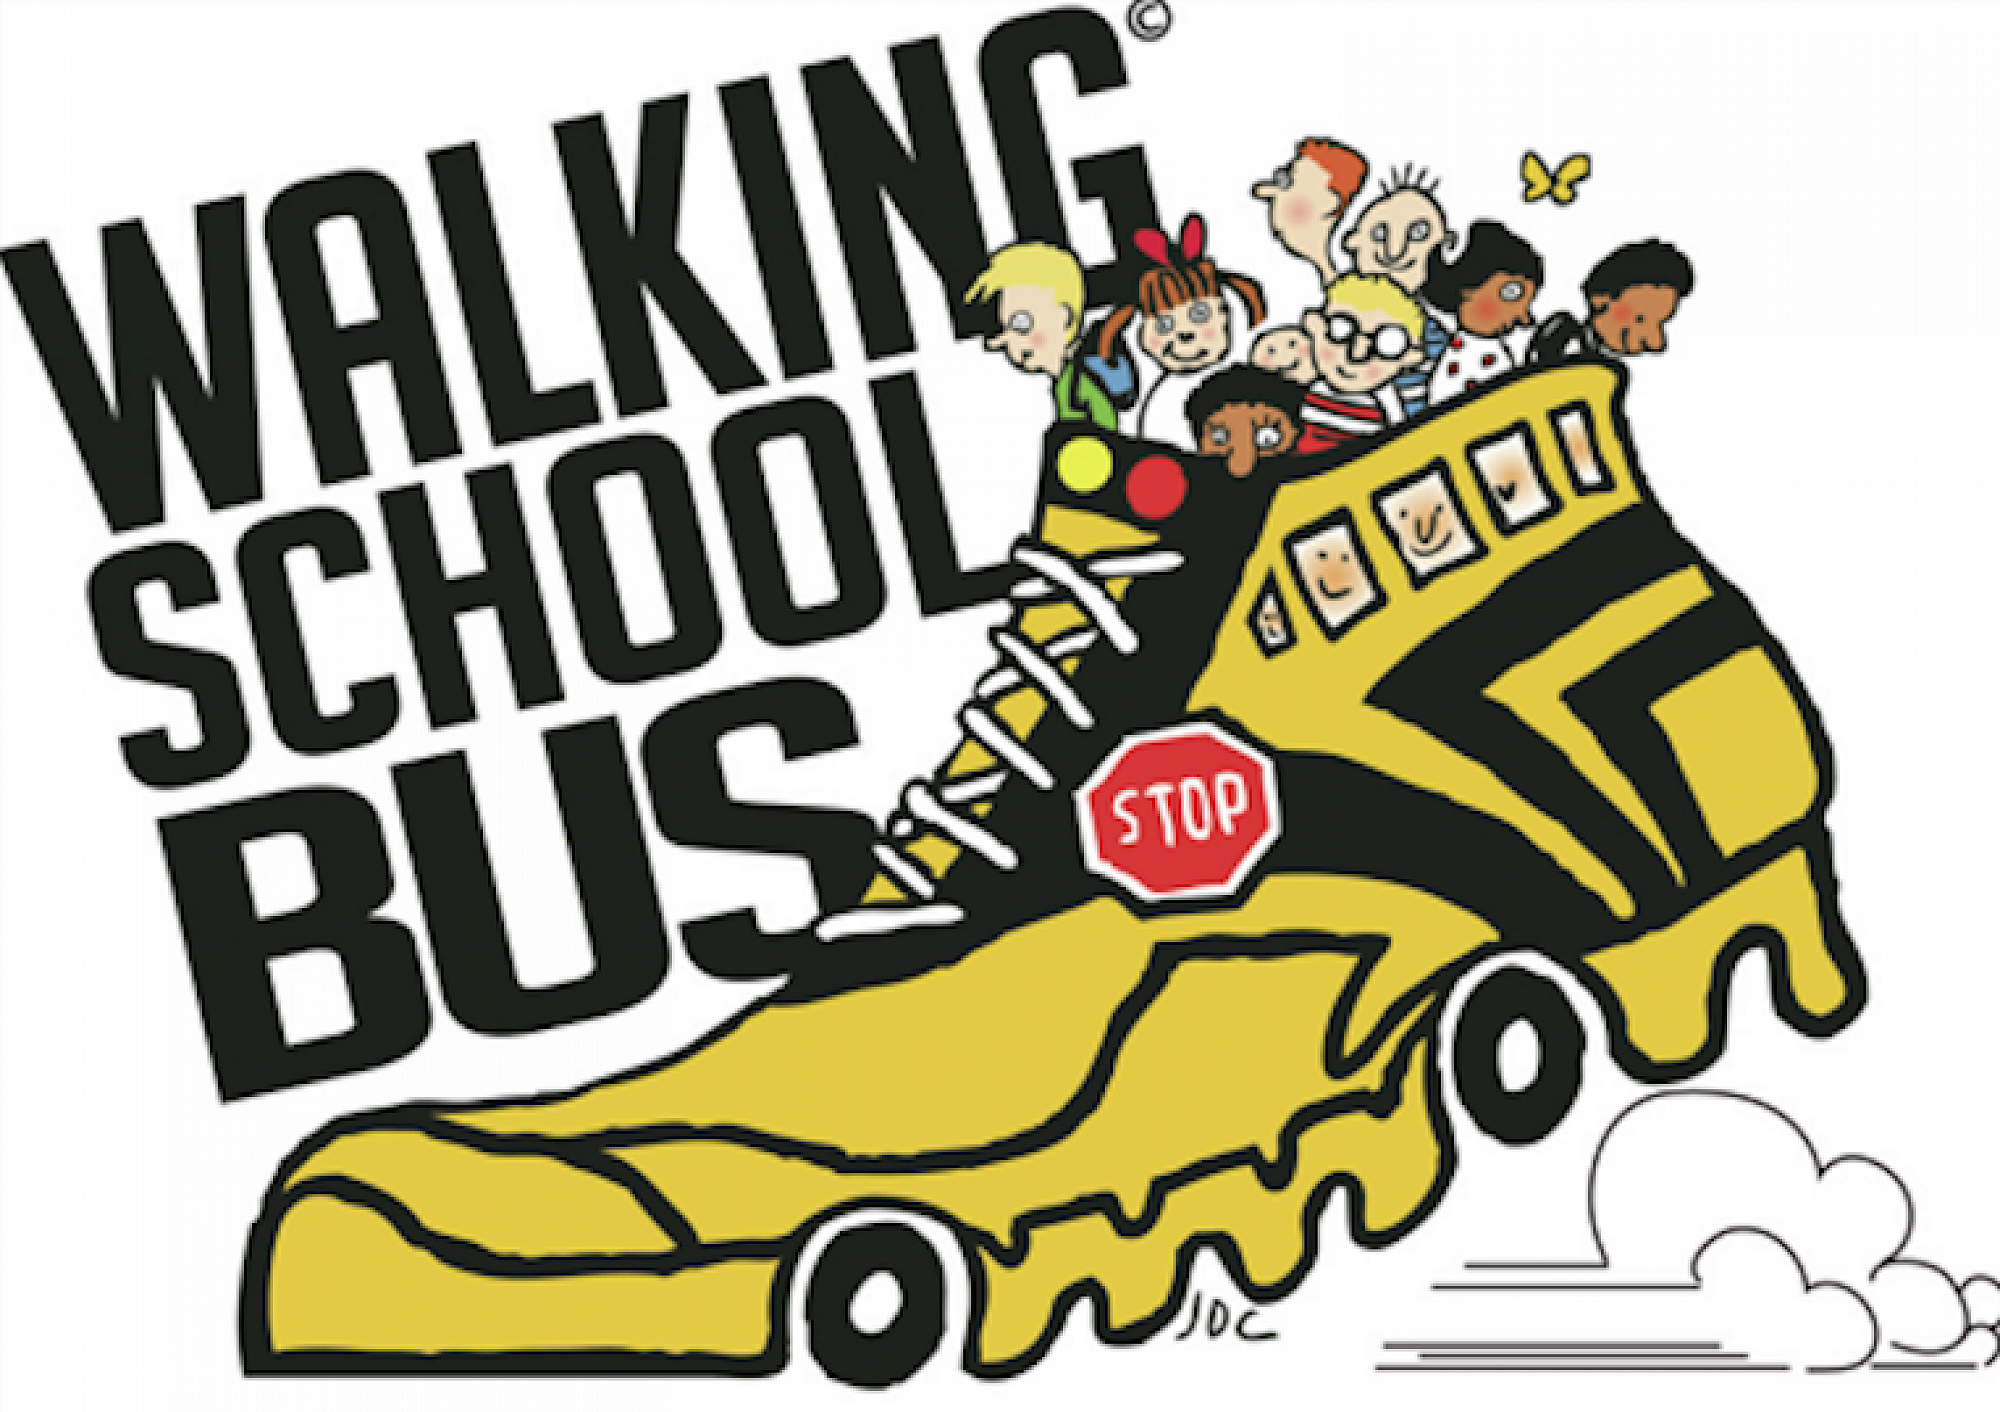 Walking school bus clipart jpg transparent stock Walking / Scootering School Bus Update jpg transparent stock